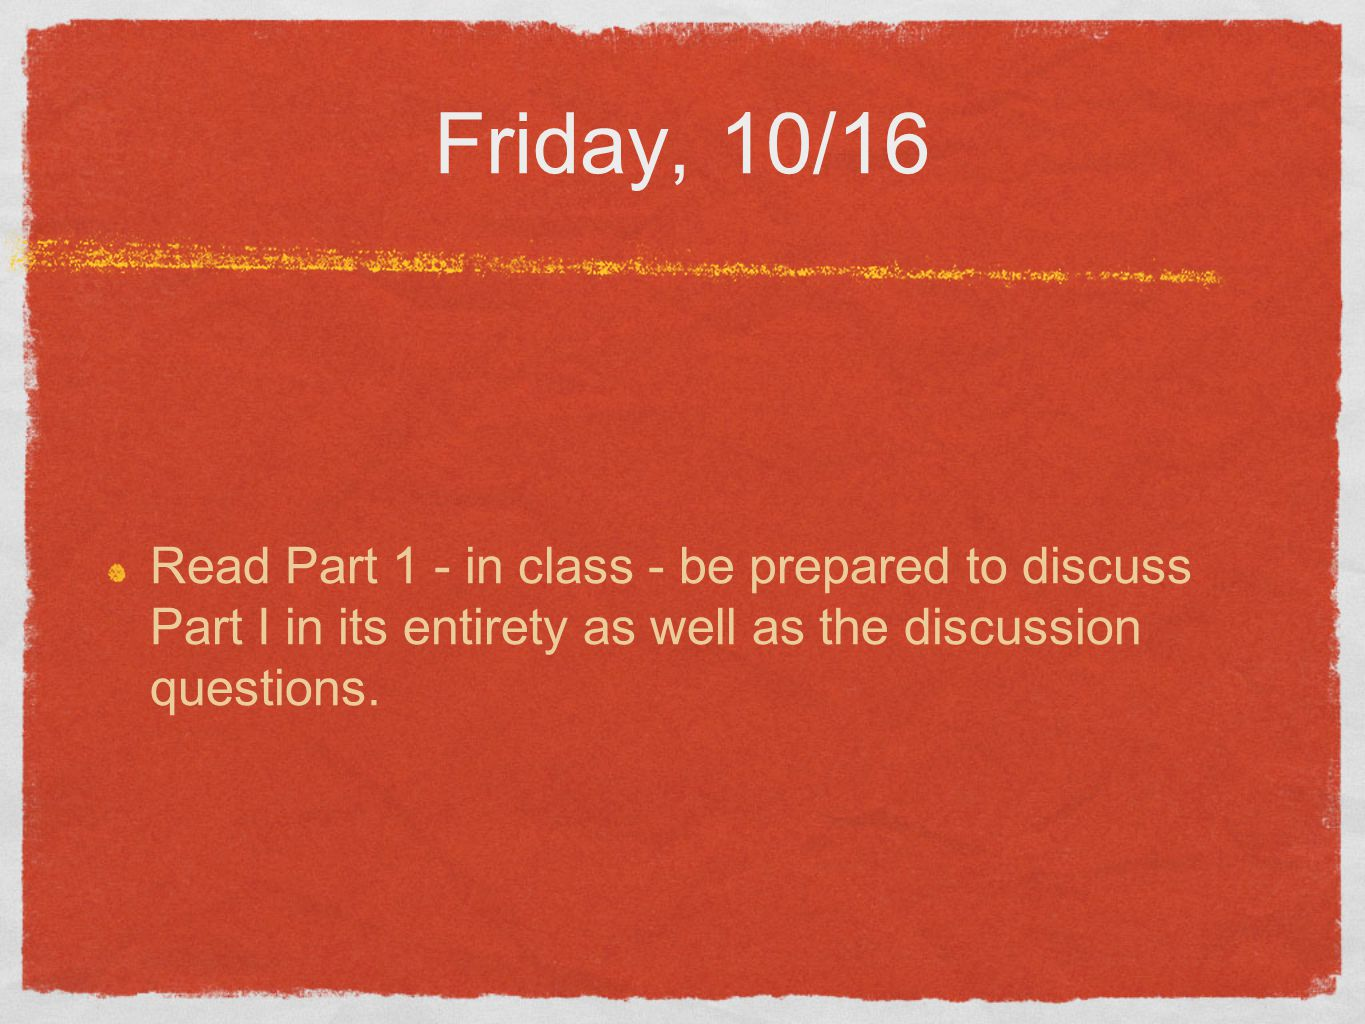 Friday, 10/16 Read Part 1 - in class - be prepared to discuss Part I in its entirety as well as the discussion questions.